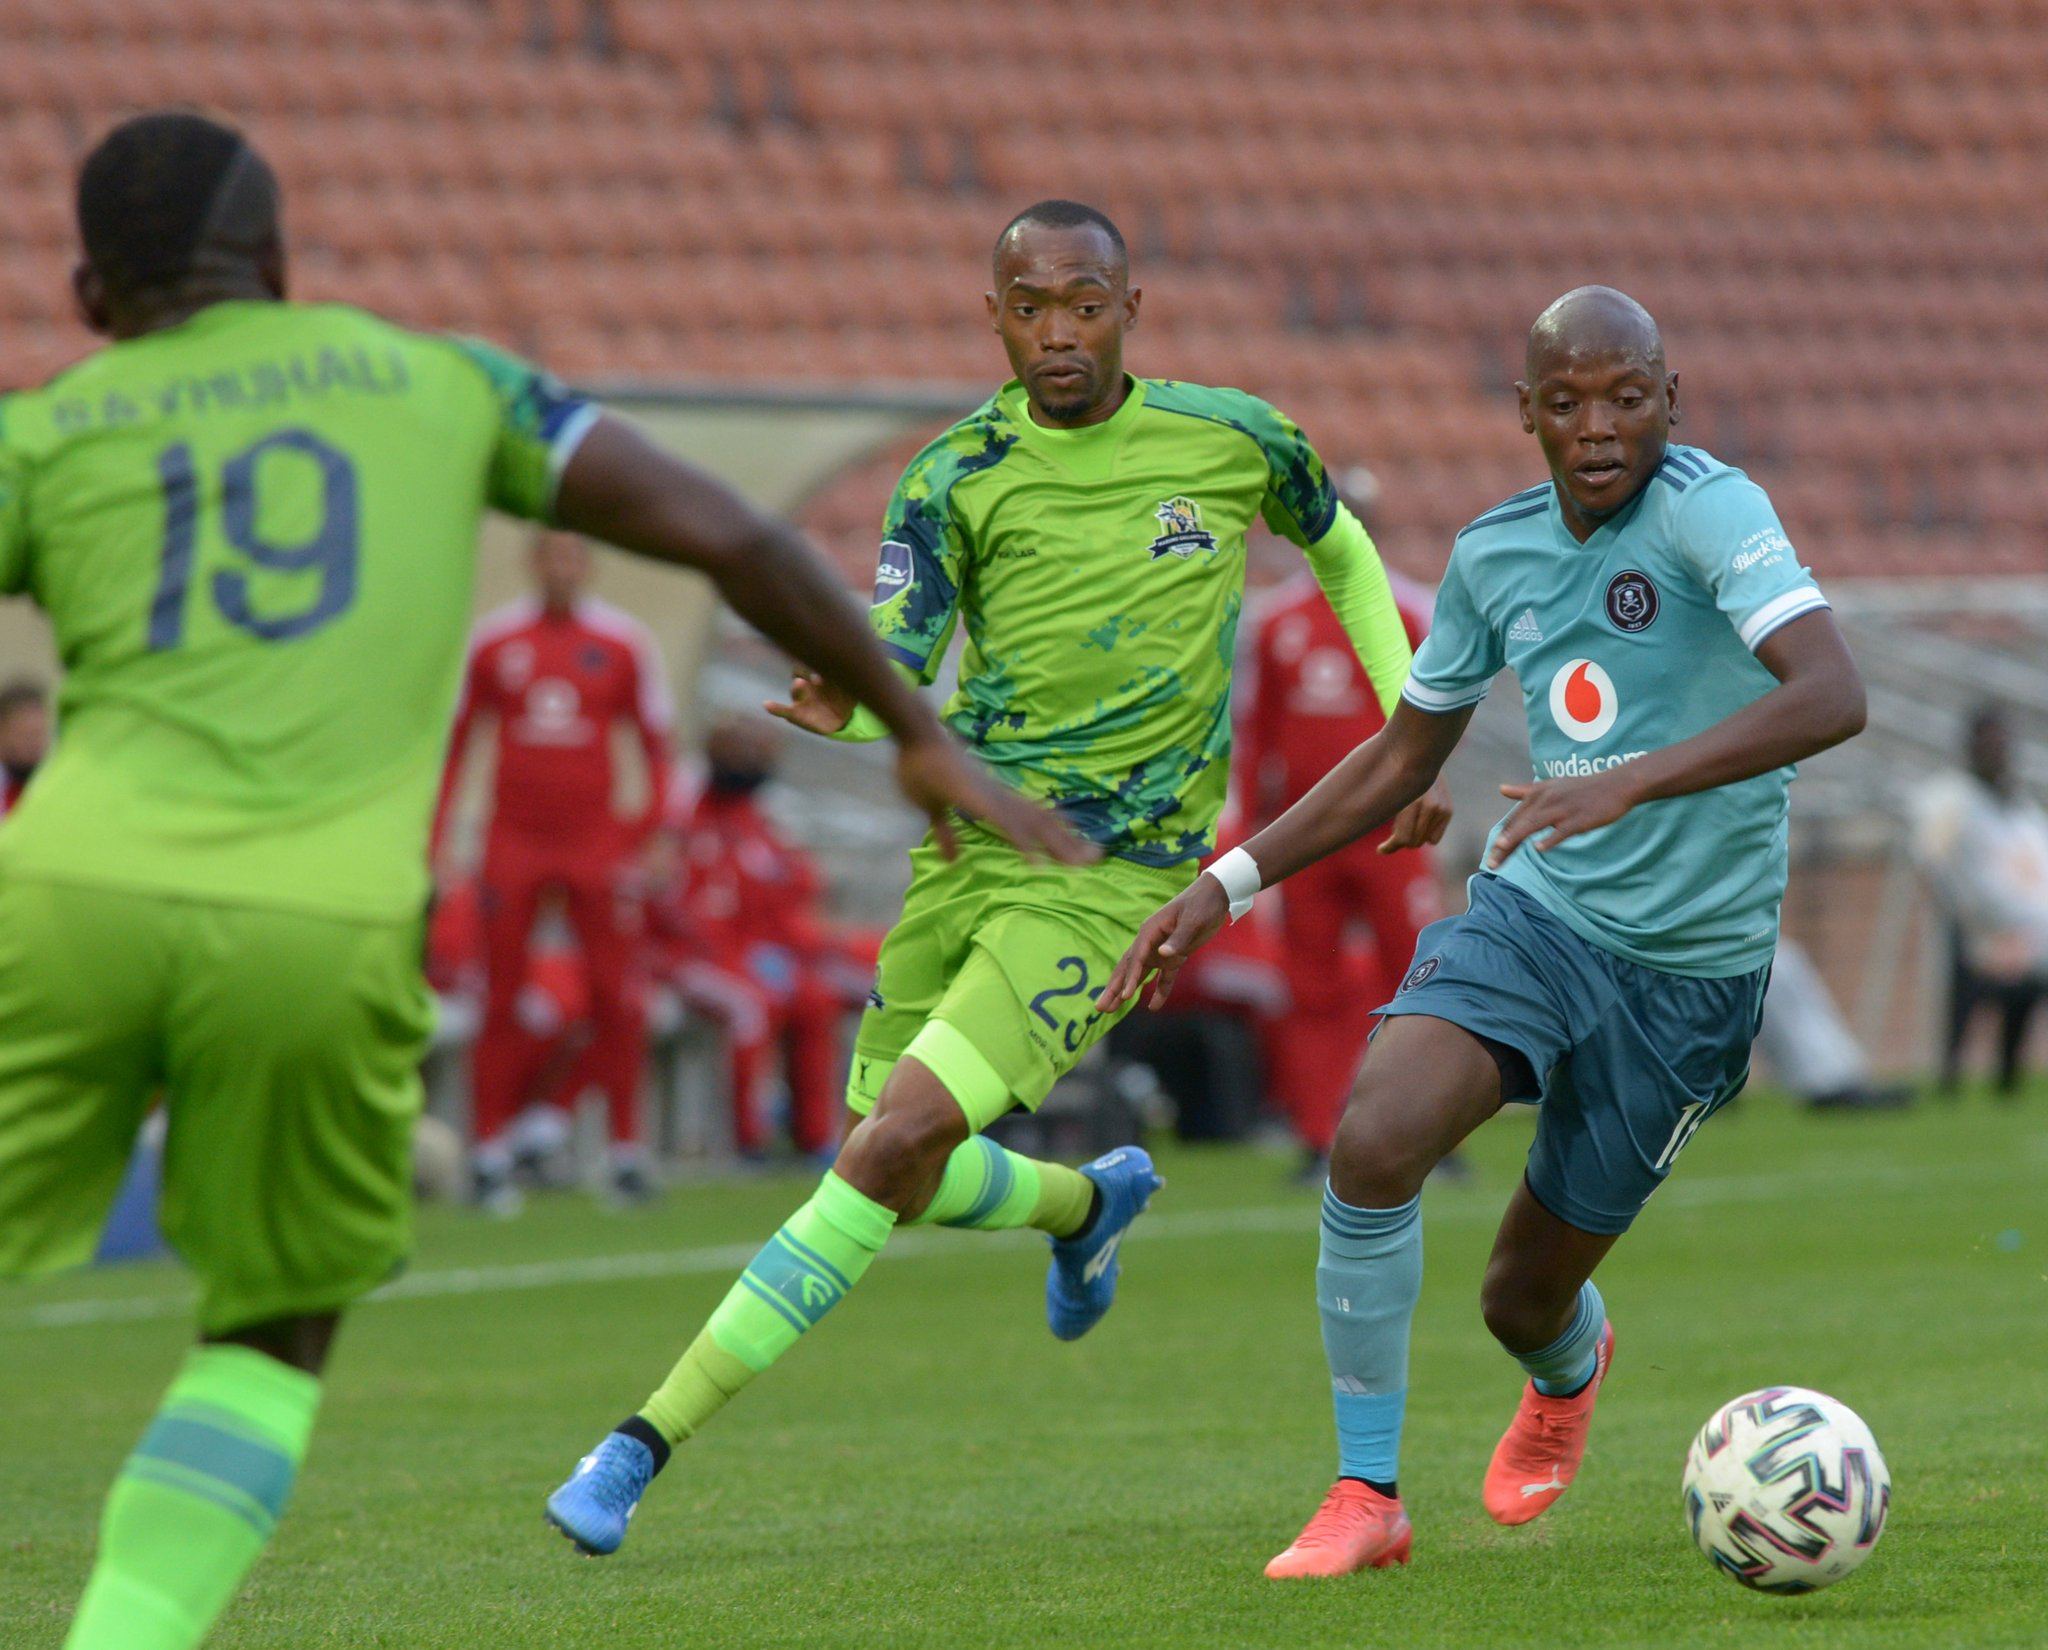 Orlando Pirates were held to a 0-0 draw in a DStv Premiership match by newcomers Marumo Gallants.